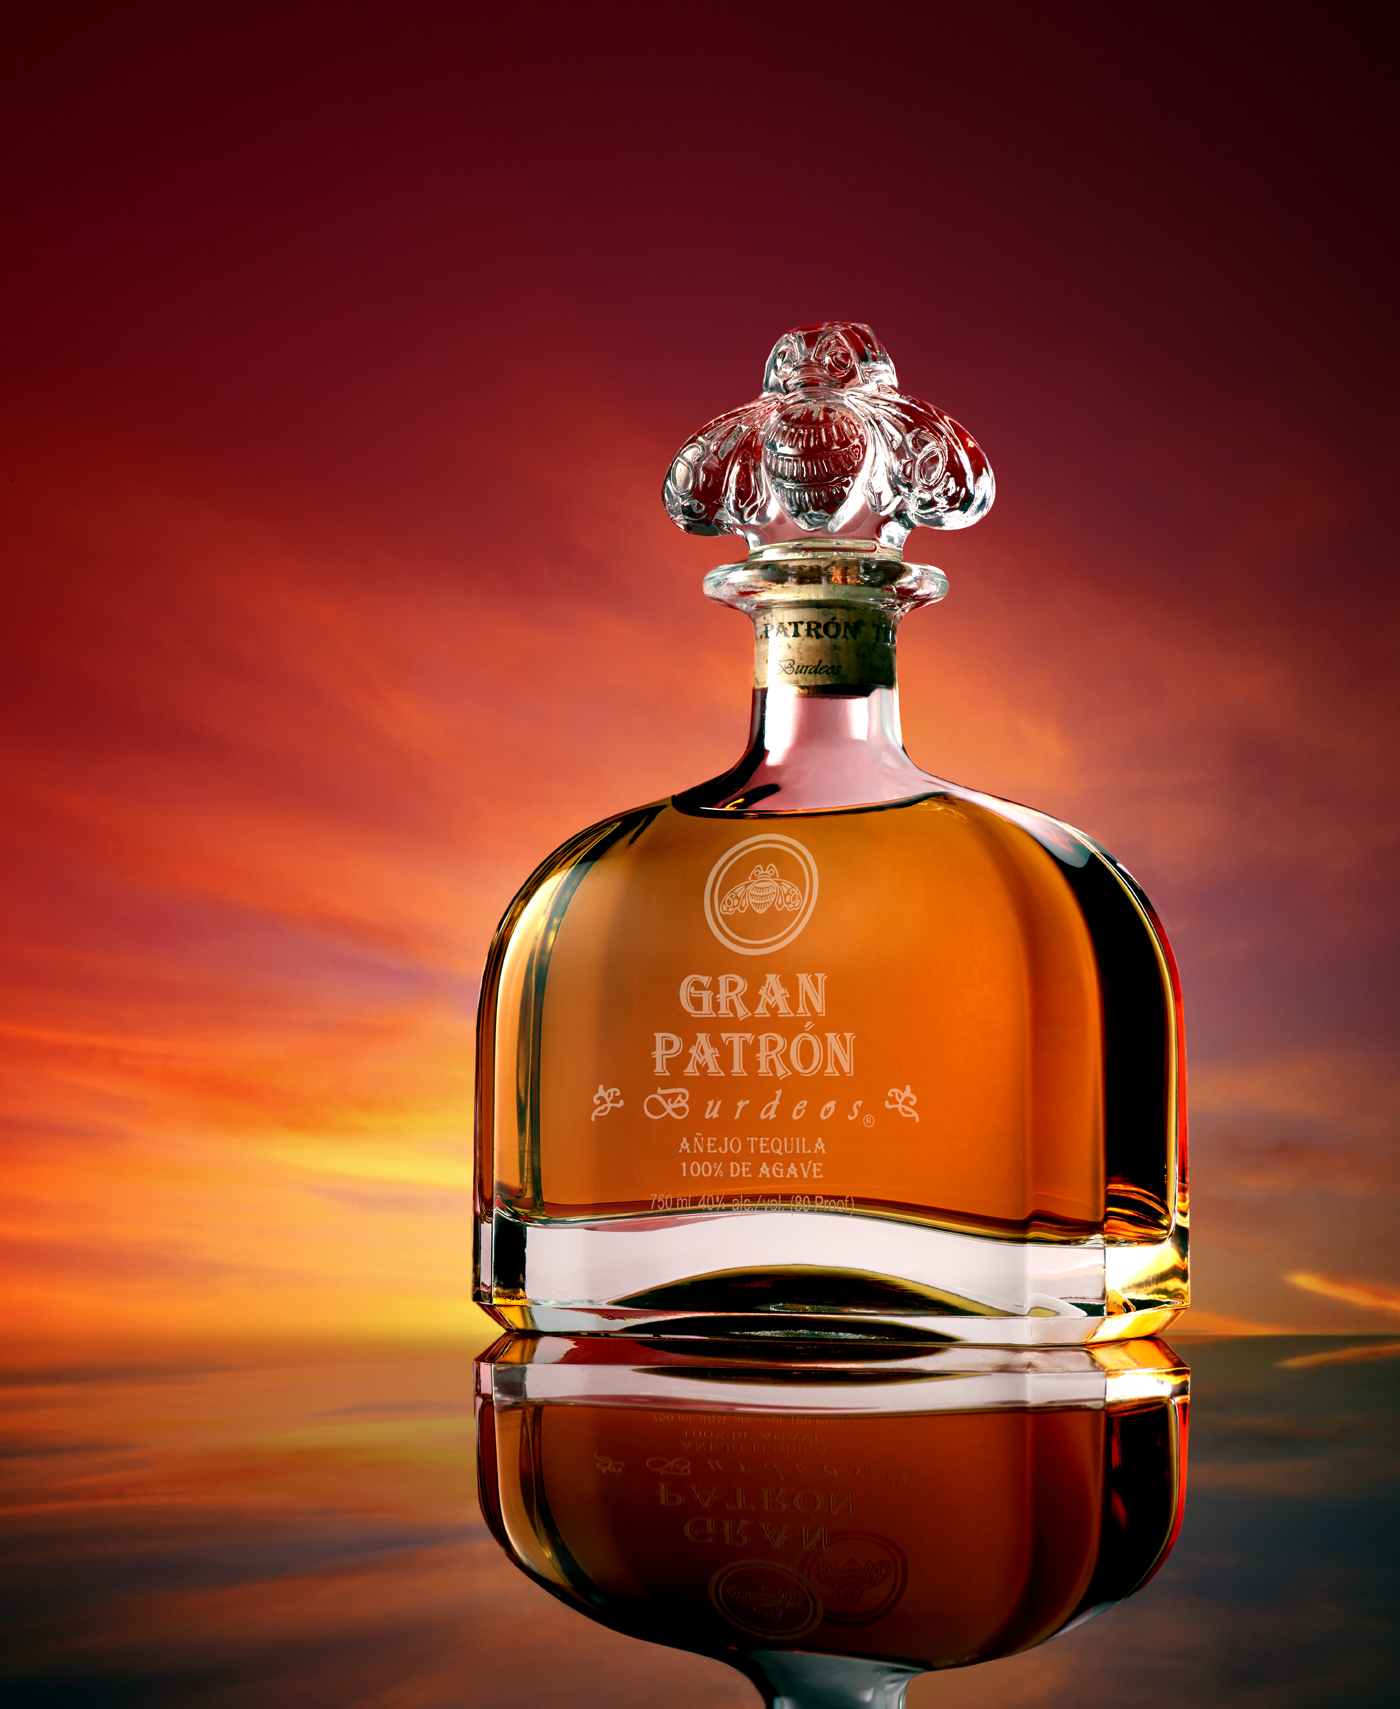 PATRON_GranBurdeos_2016_Bottle_FrontAngle_SKY copy